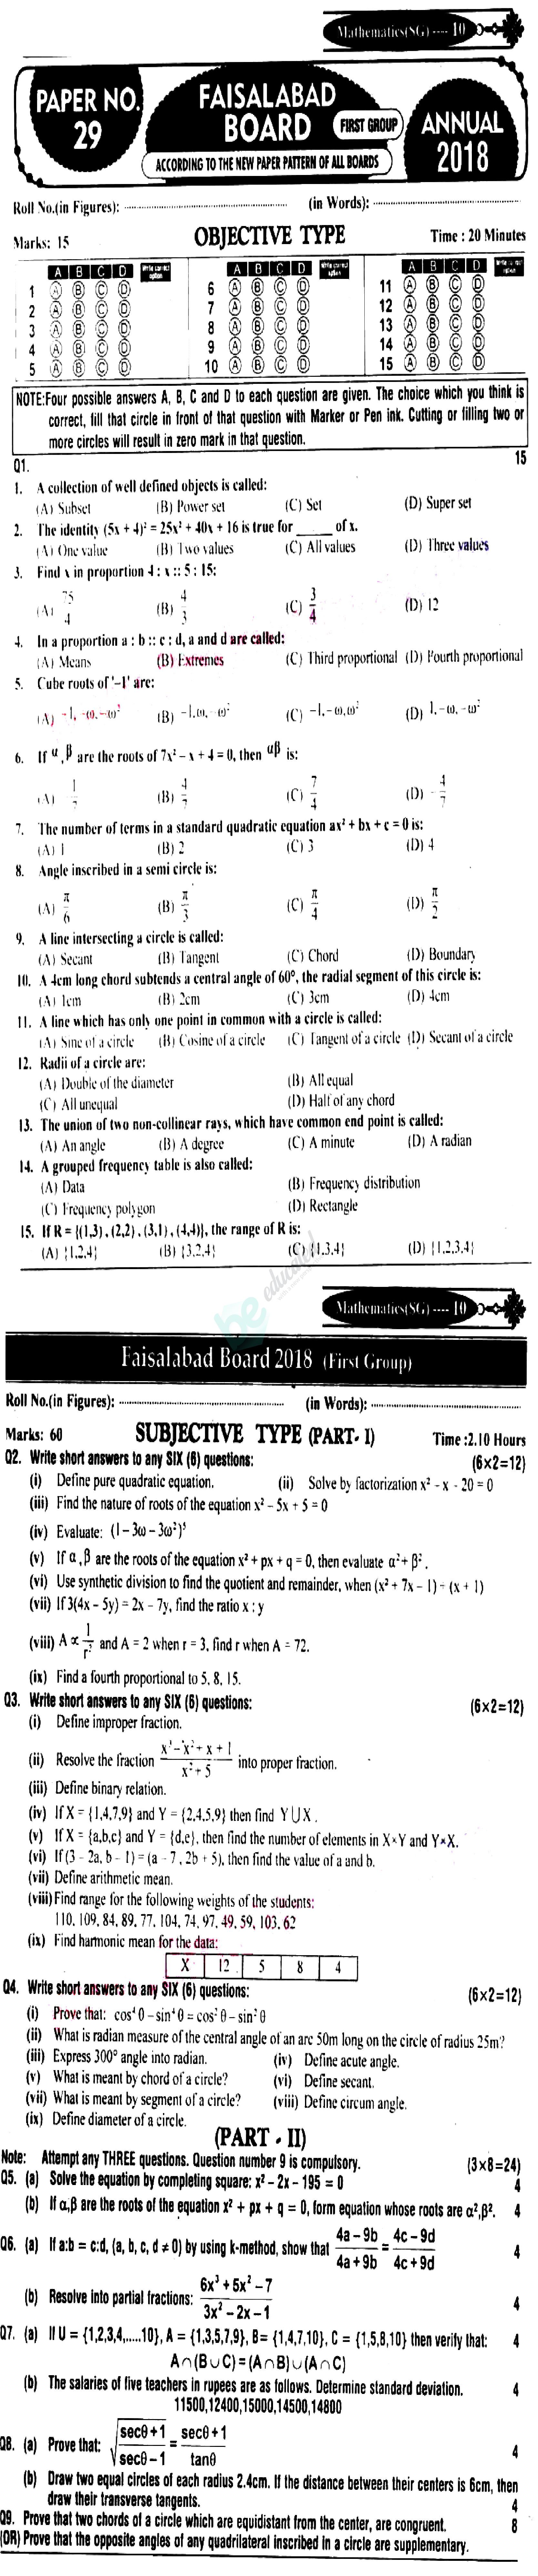 Related 10th Class Past Papers 2018